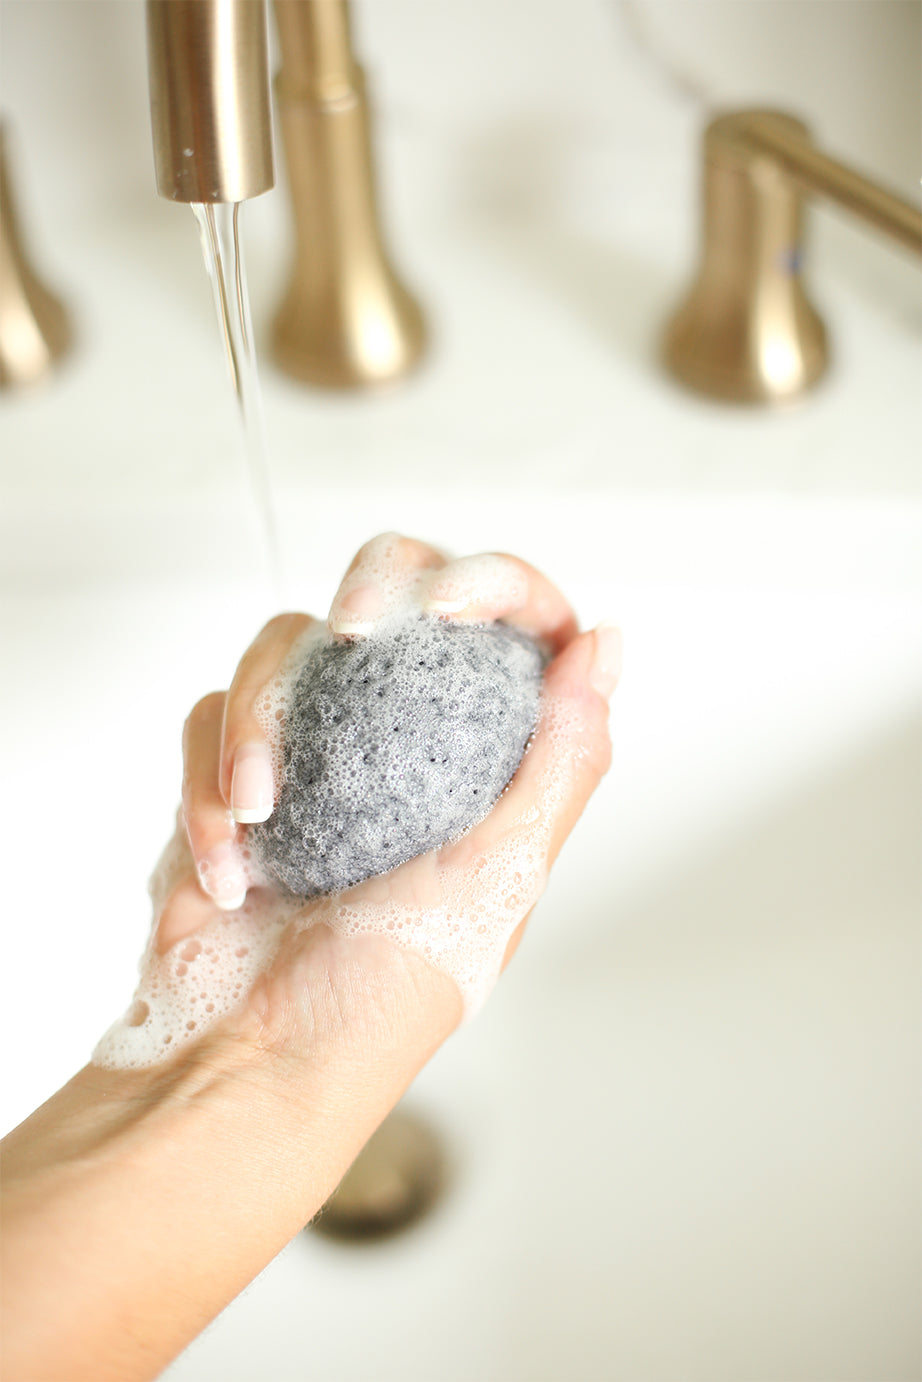 Charcoal and Bamboo Konjac Sponge